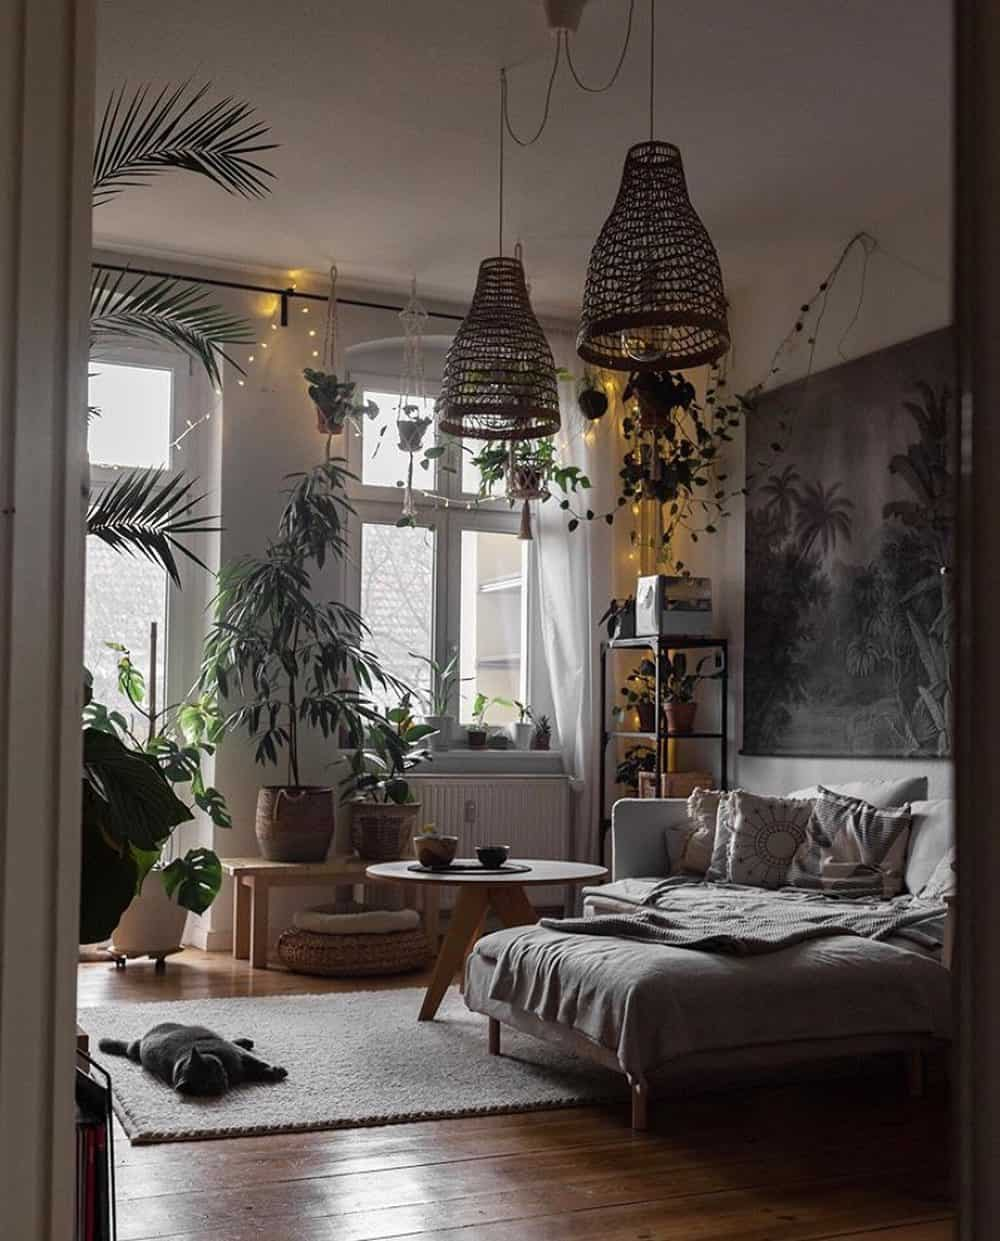 How to add texture to your interior home design? Take a look at our post for inspirations and tips to add texture to your designs. #texture #interiordesign #homedecorating